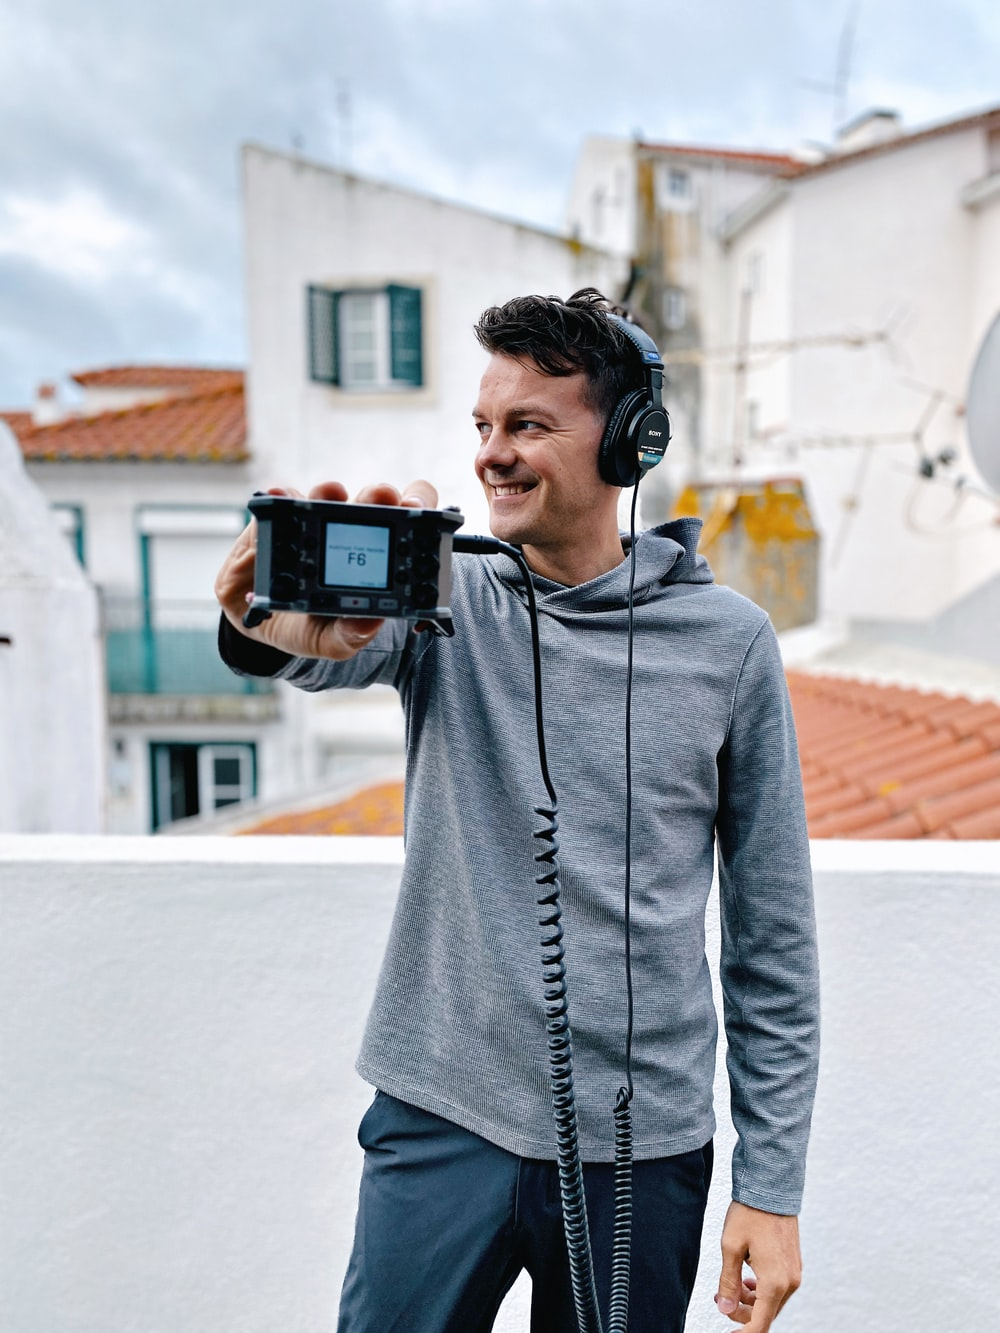 man holding smartphone and wearing headset